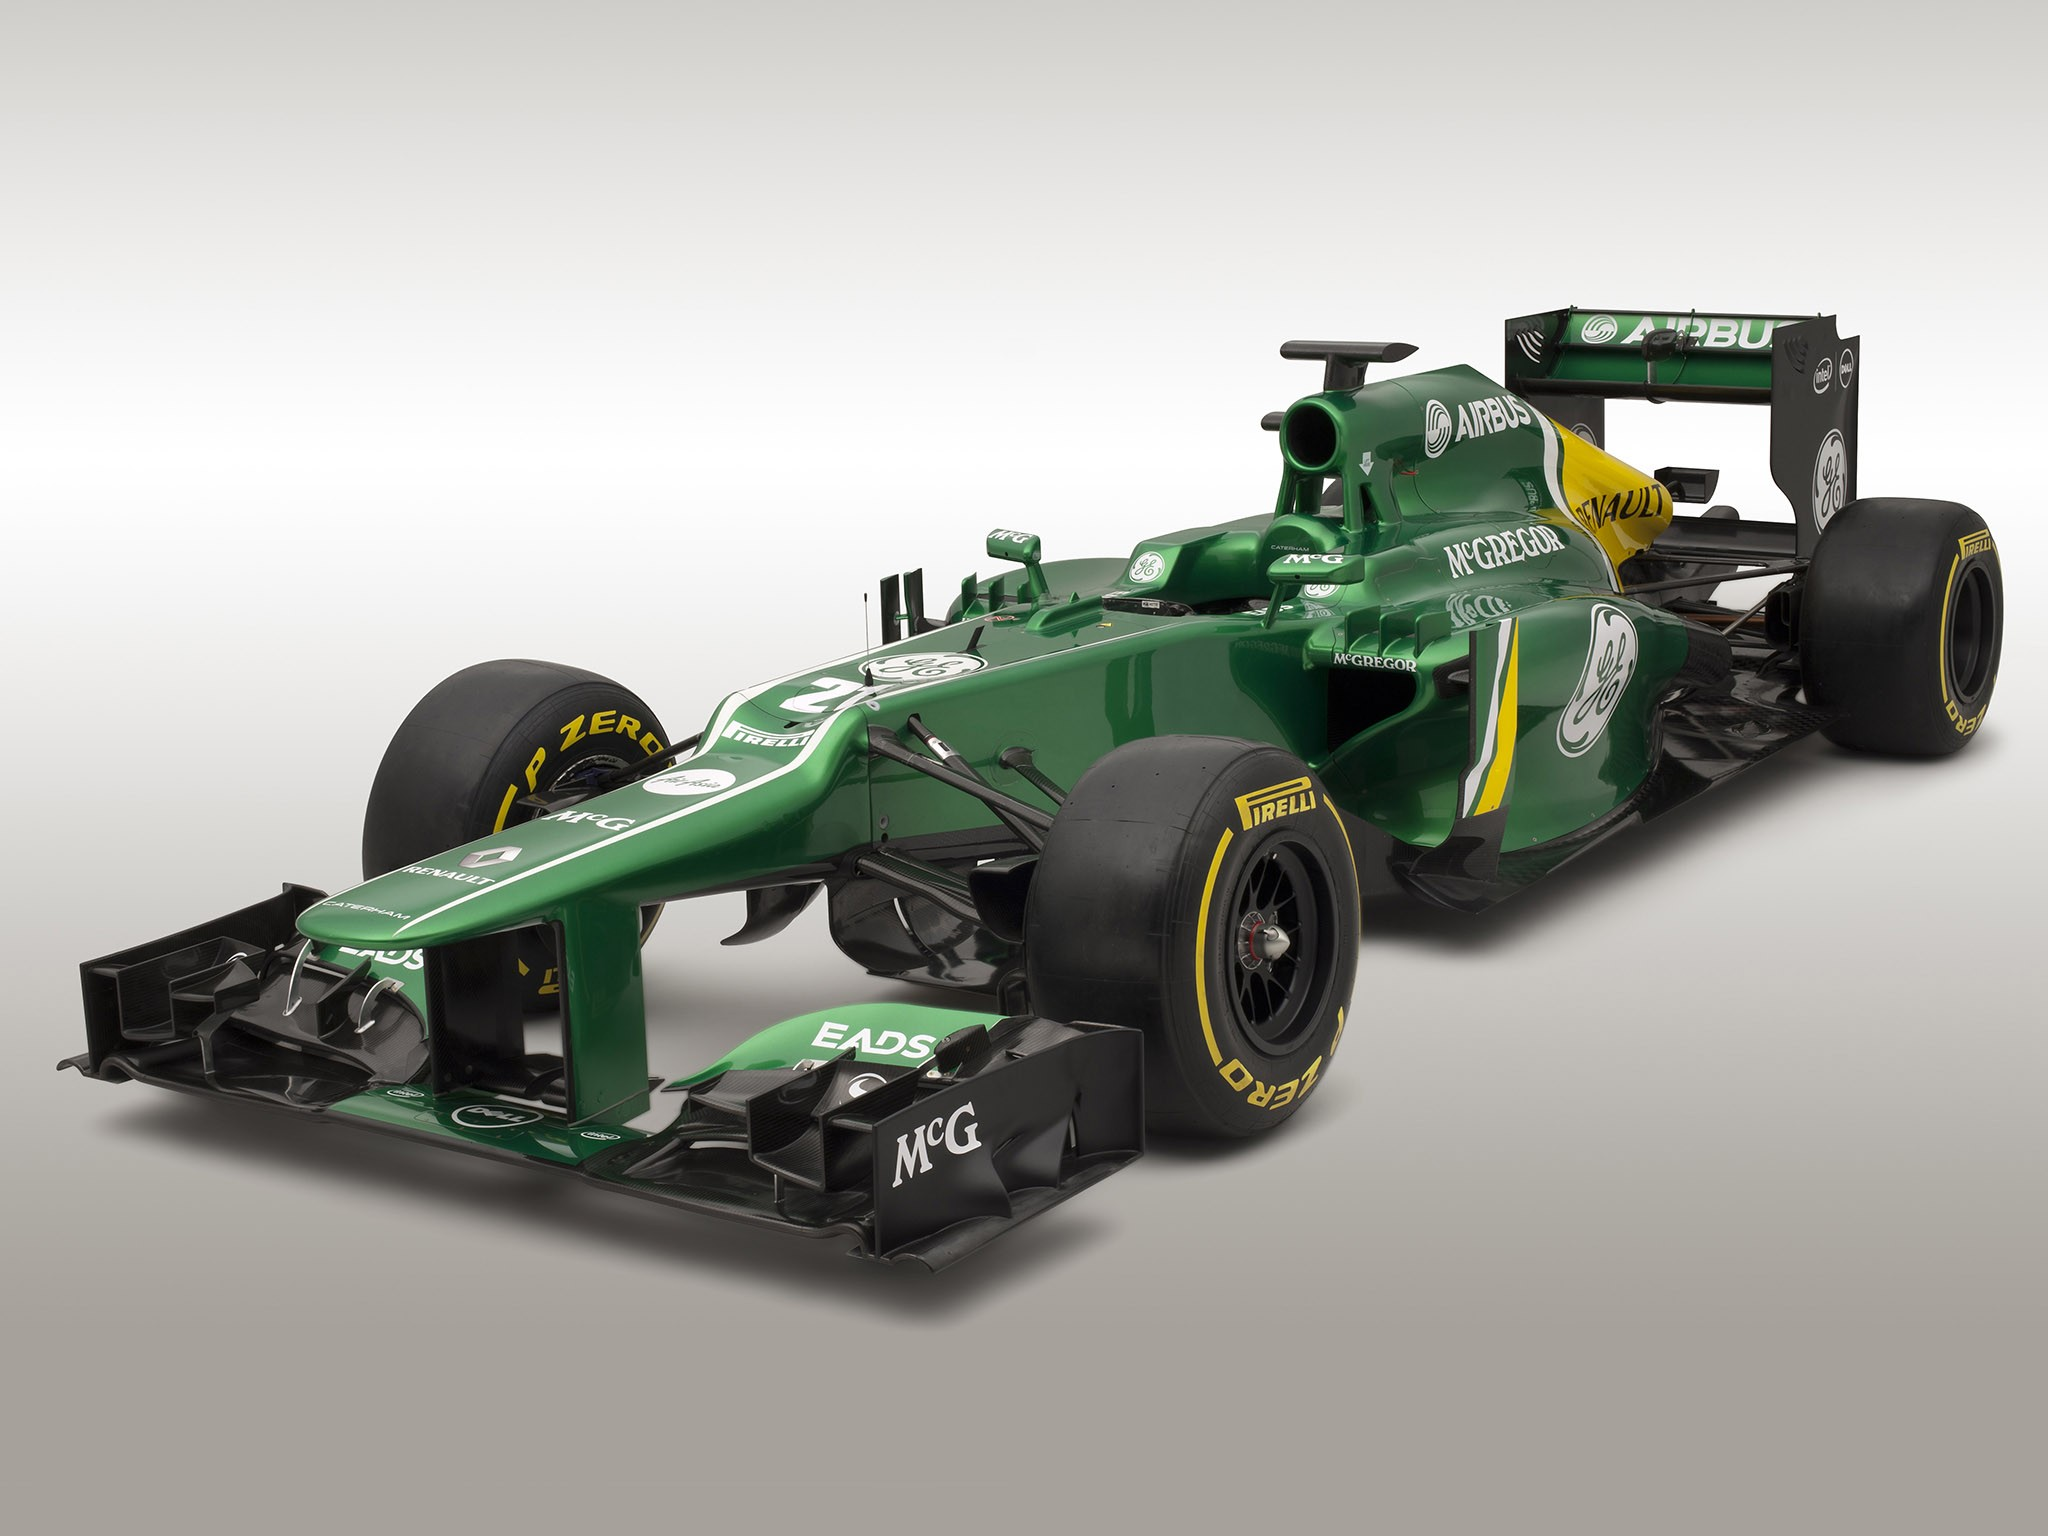 Caterham F1 Team Renault V8 CT03 2013